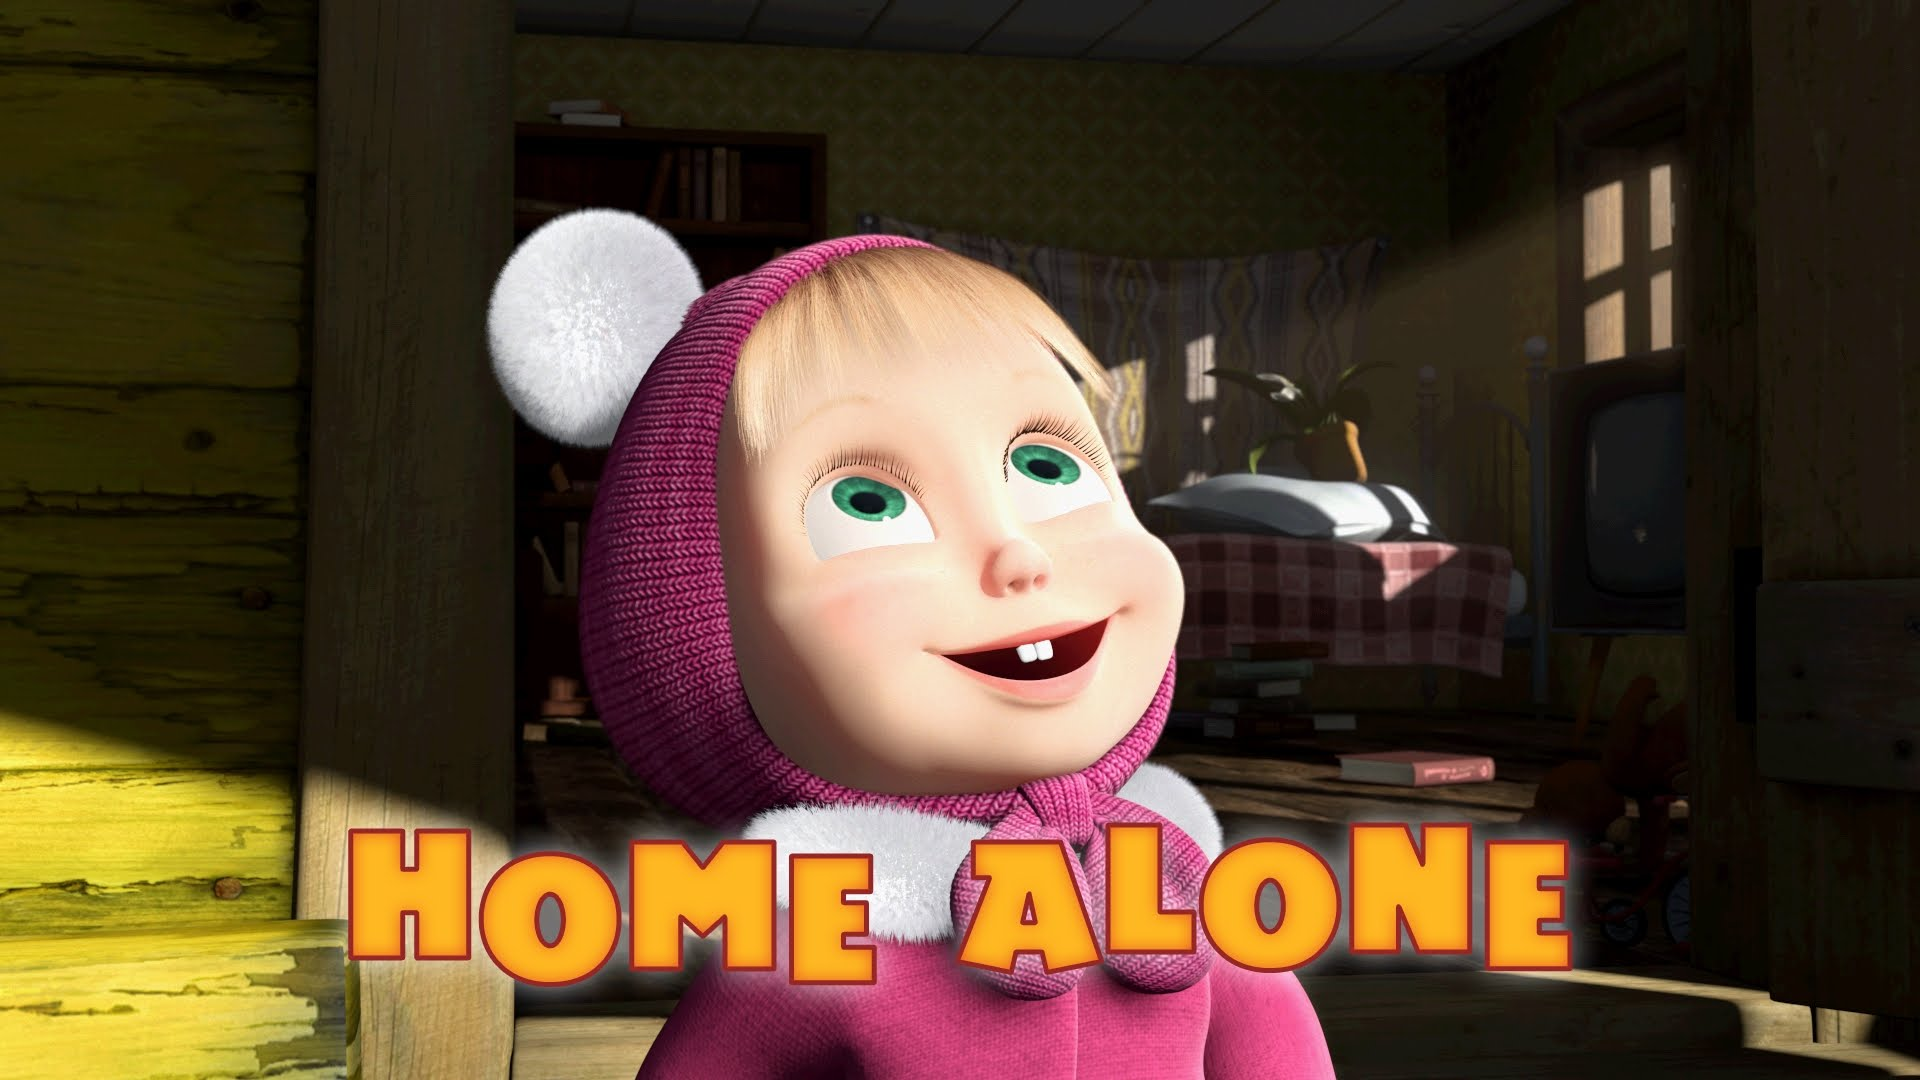 Masha and The Bear - Home Alone (Episode 21) - Duration: 7 minutes.